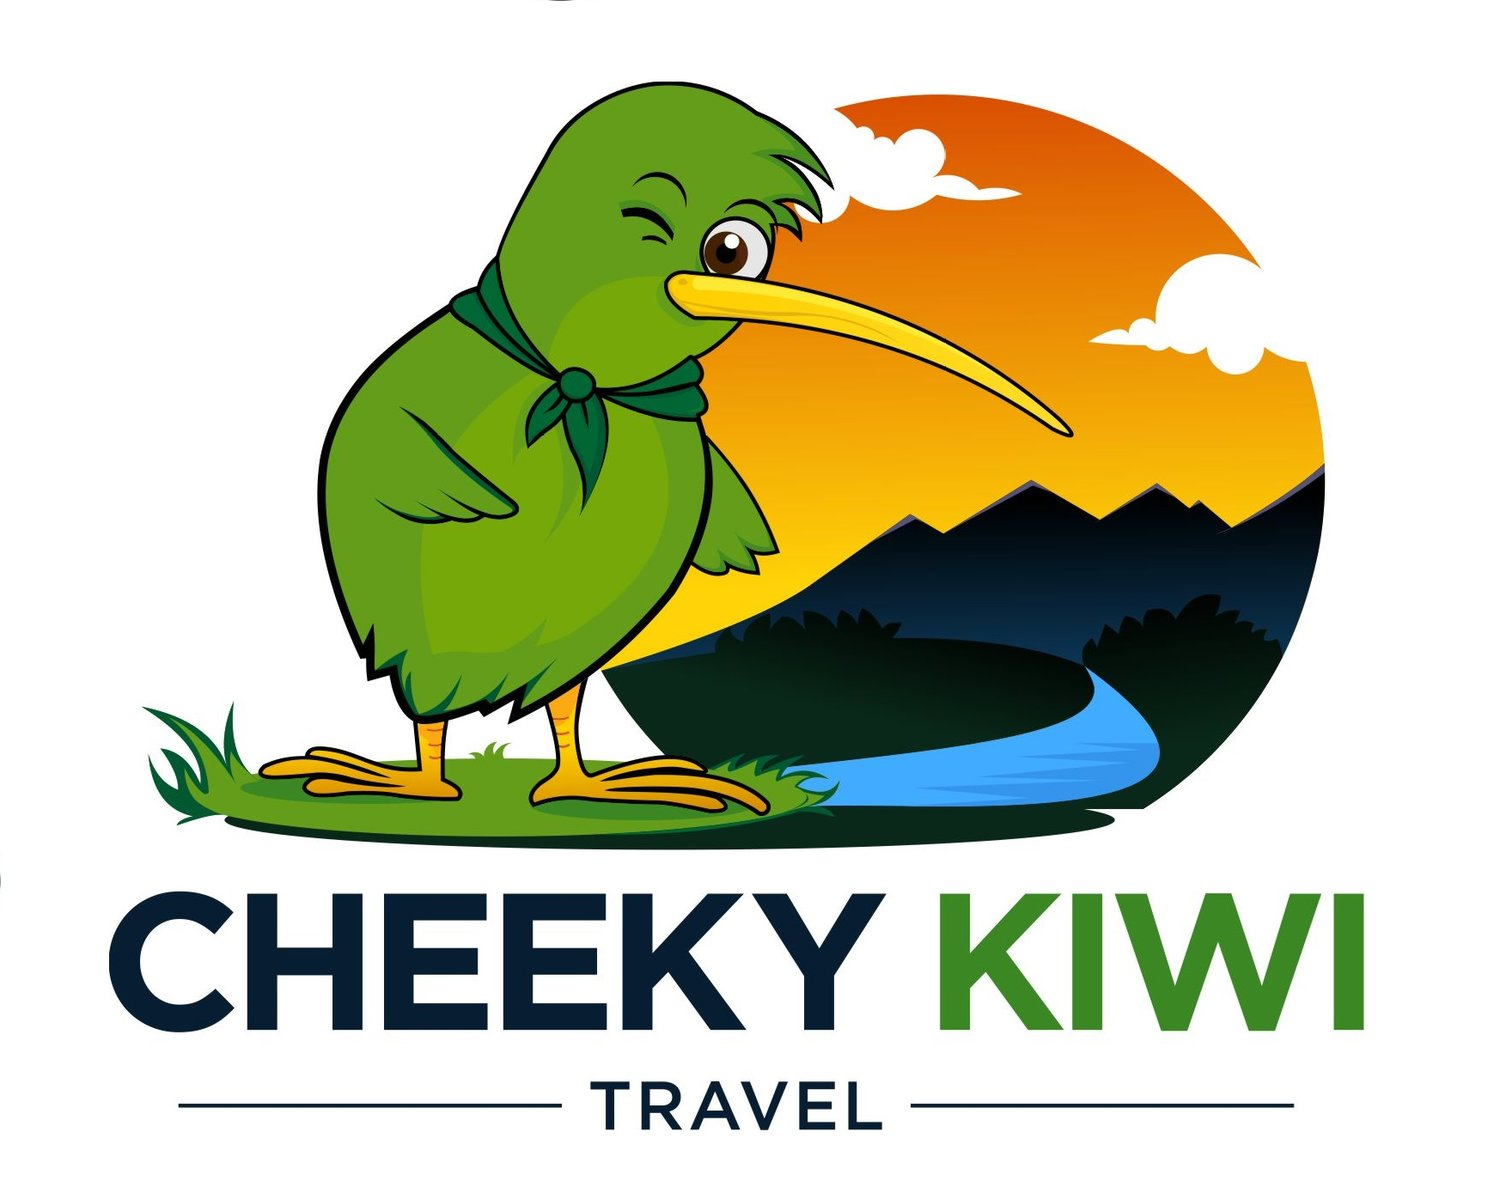 Cheeky Kiwi Travel